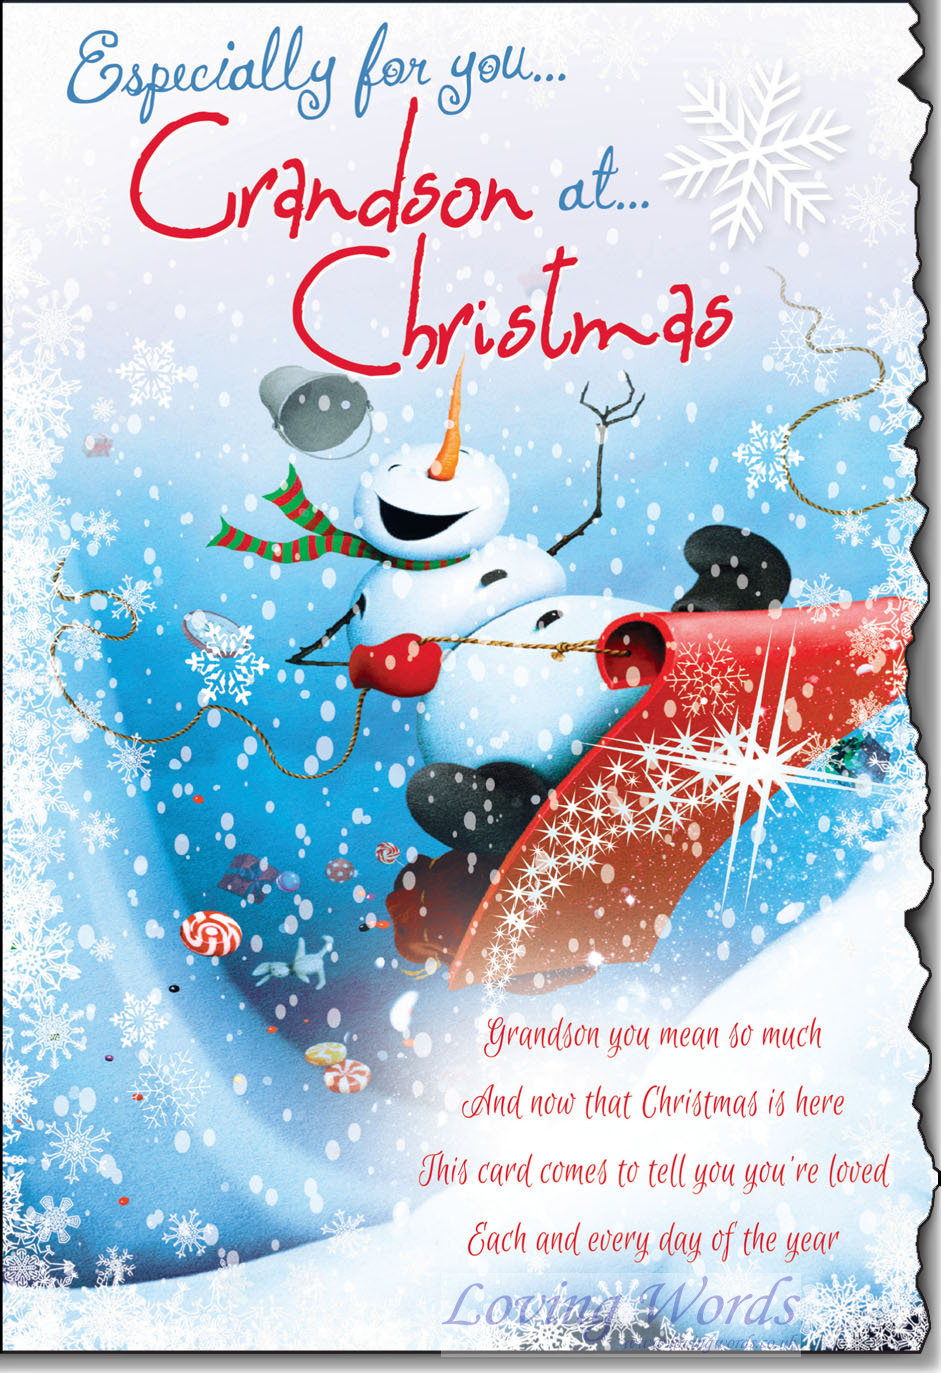 Especially For You Grandson At Christmas Greeting Cards